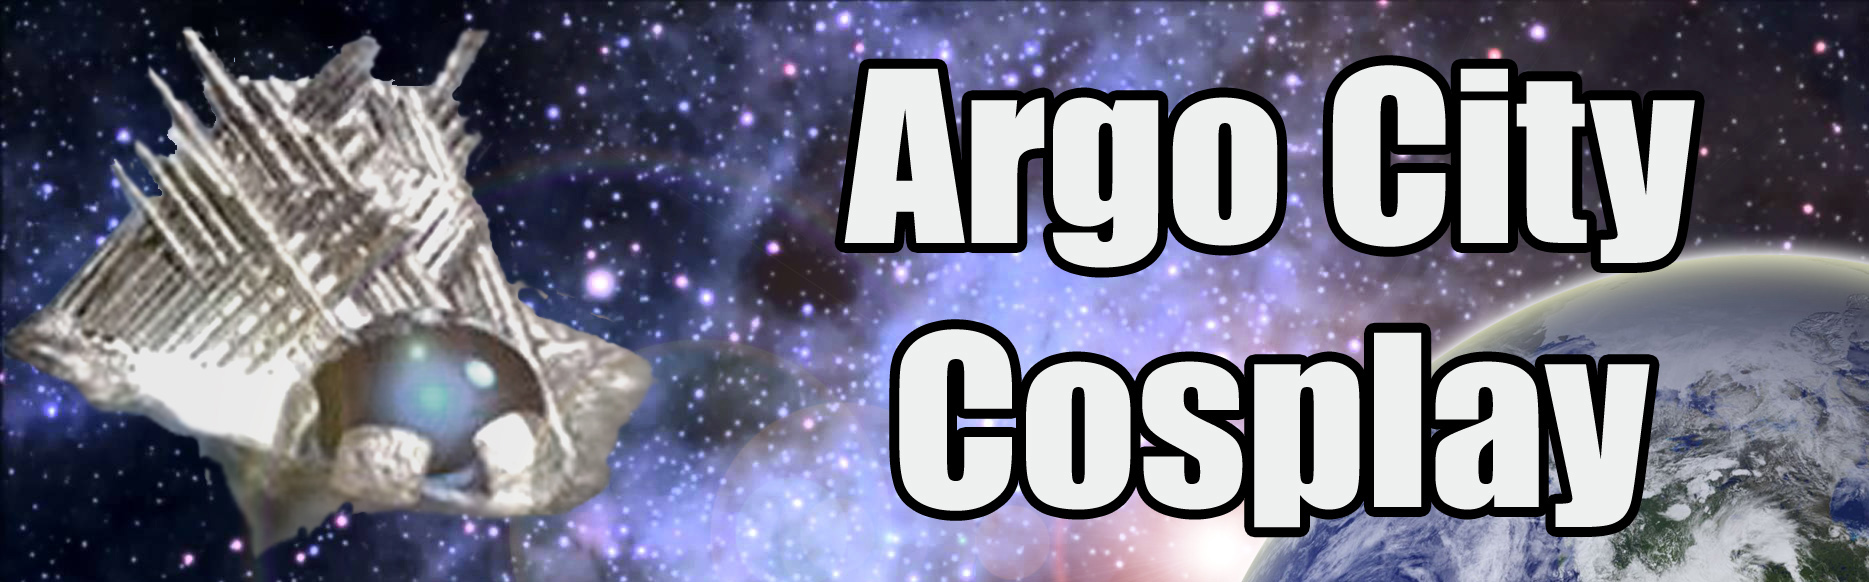 cosplay-banner